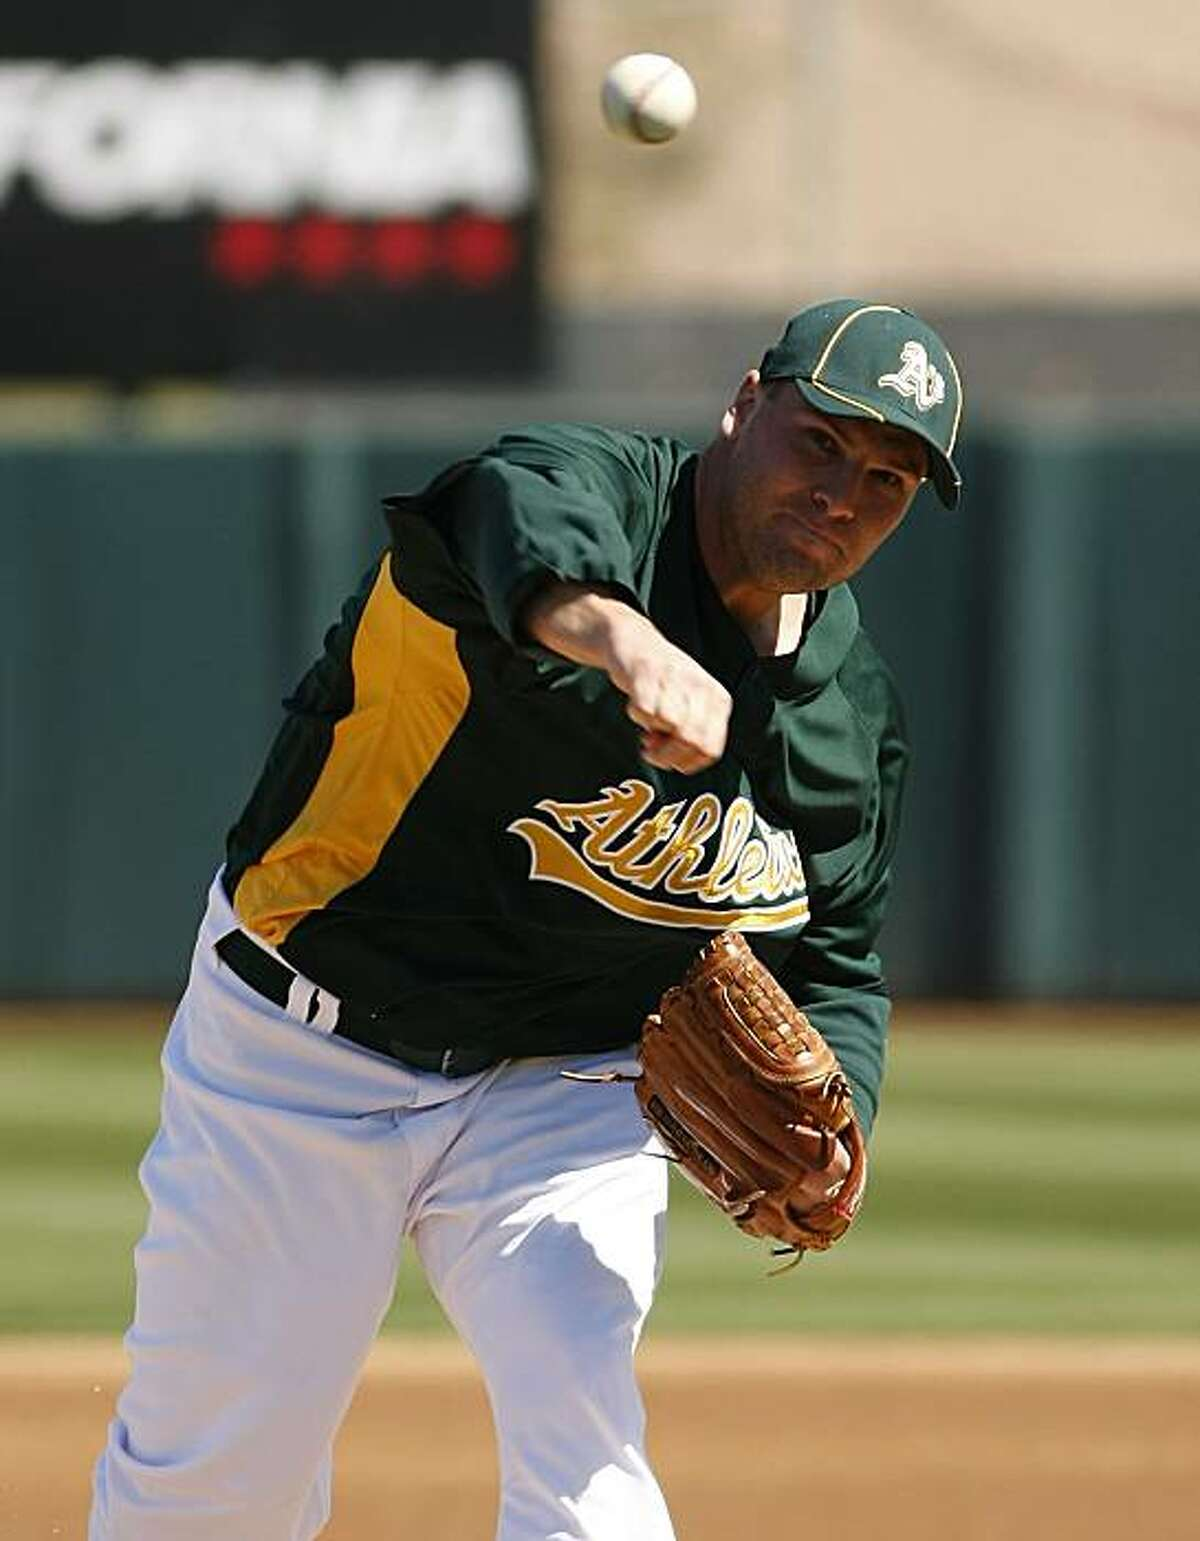 Oakland Athletics' Ben Sheets throws during the first inning against the Milwaukee Brewers during a spring training baseball game on Friday, March 5, 2010, in Phoenix.